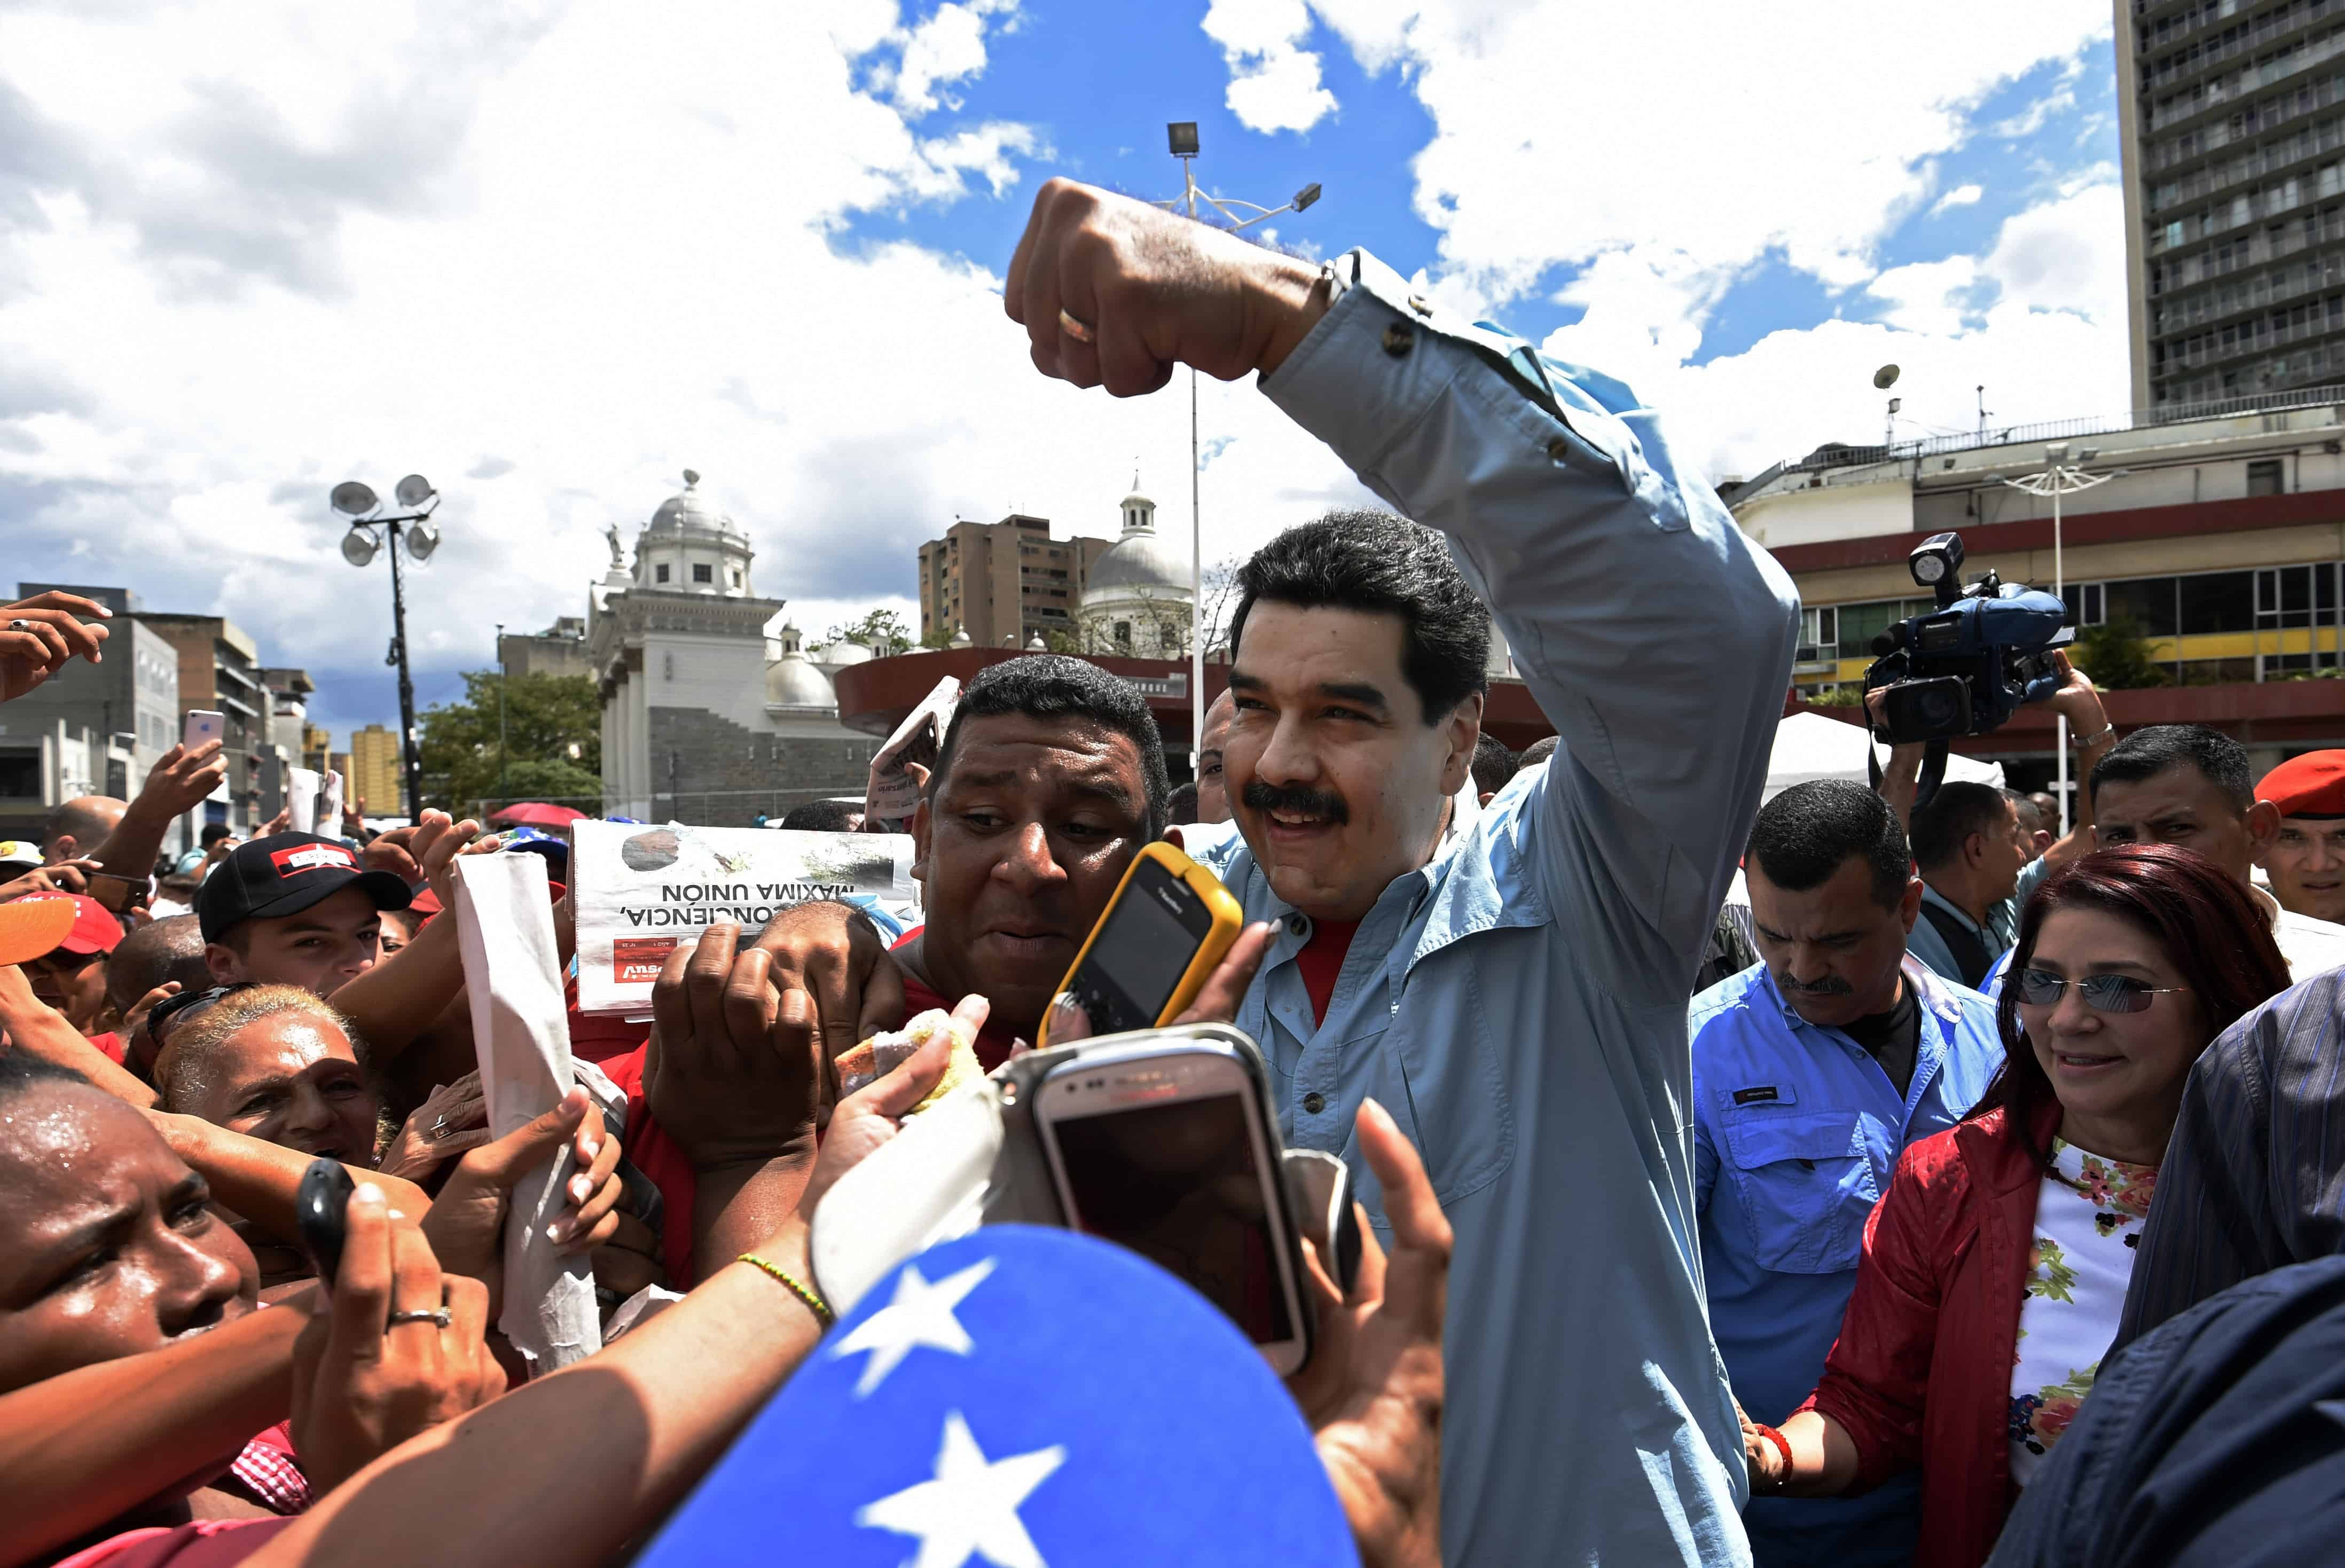 Venezuelan President Nicolás Maduro greets supporters at a rally in Caracas.